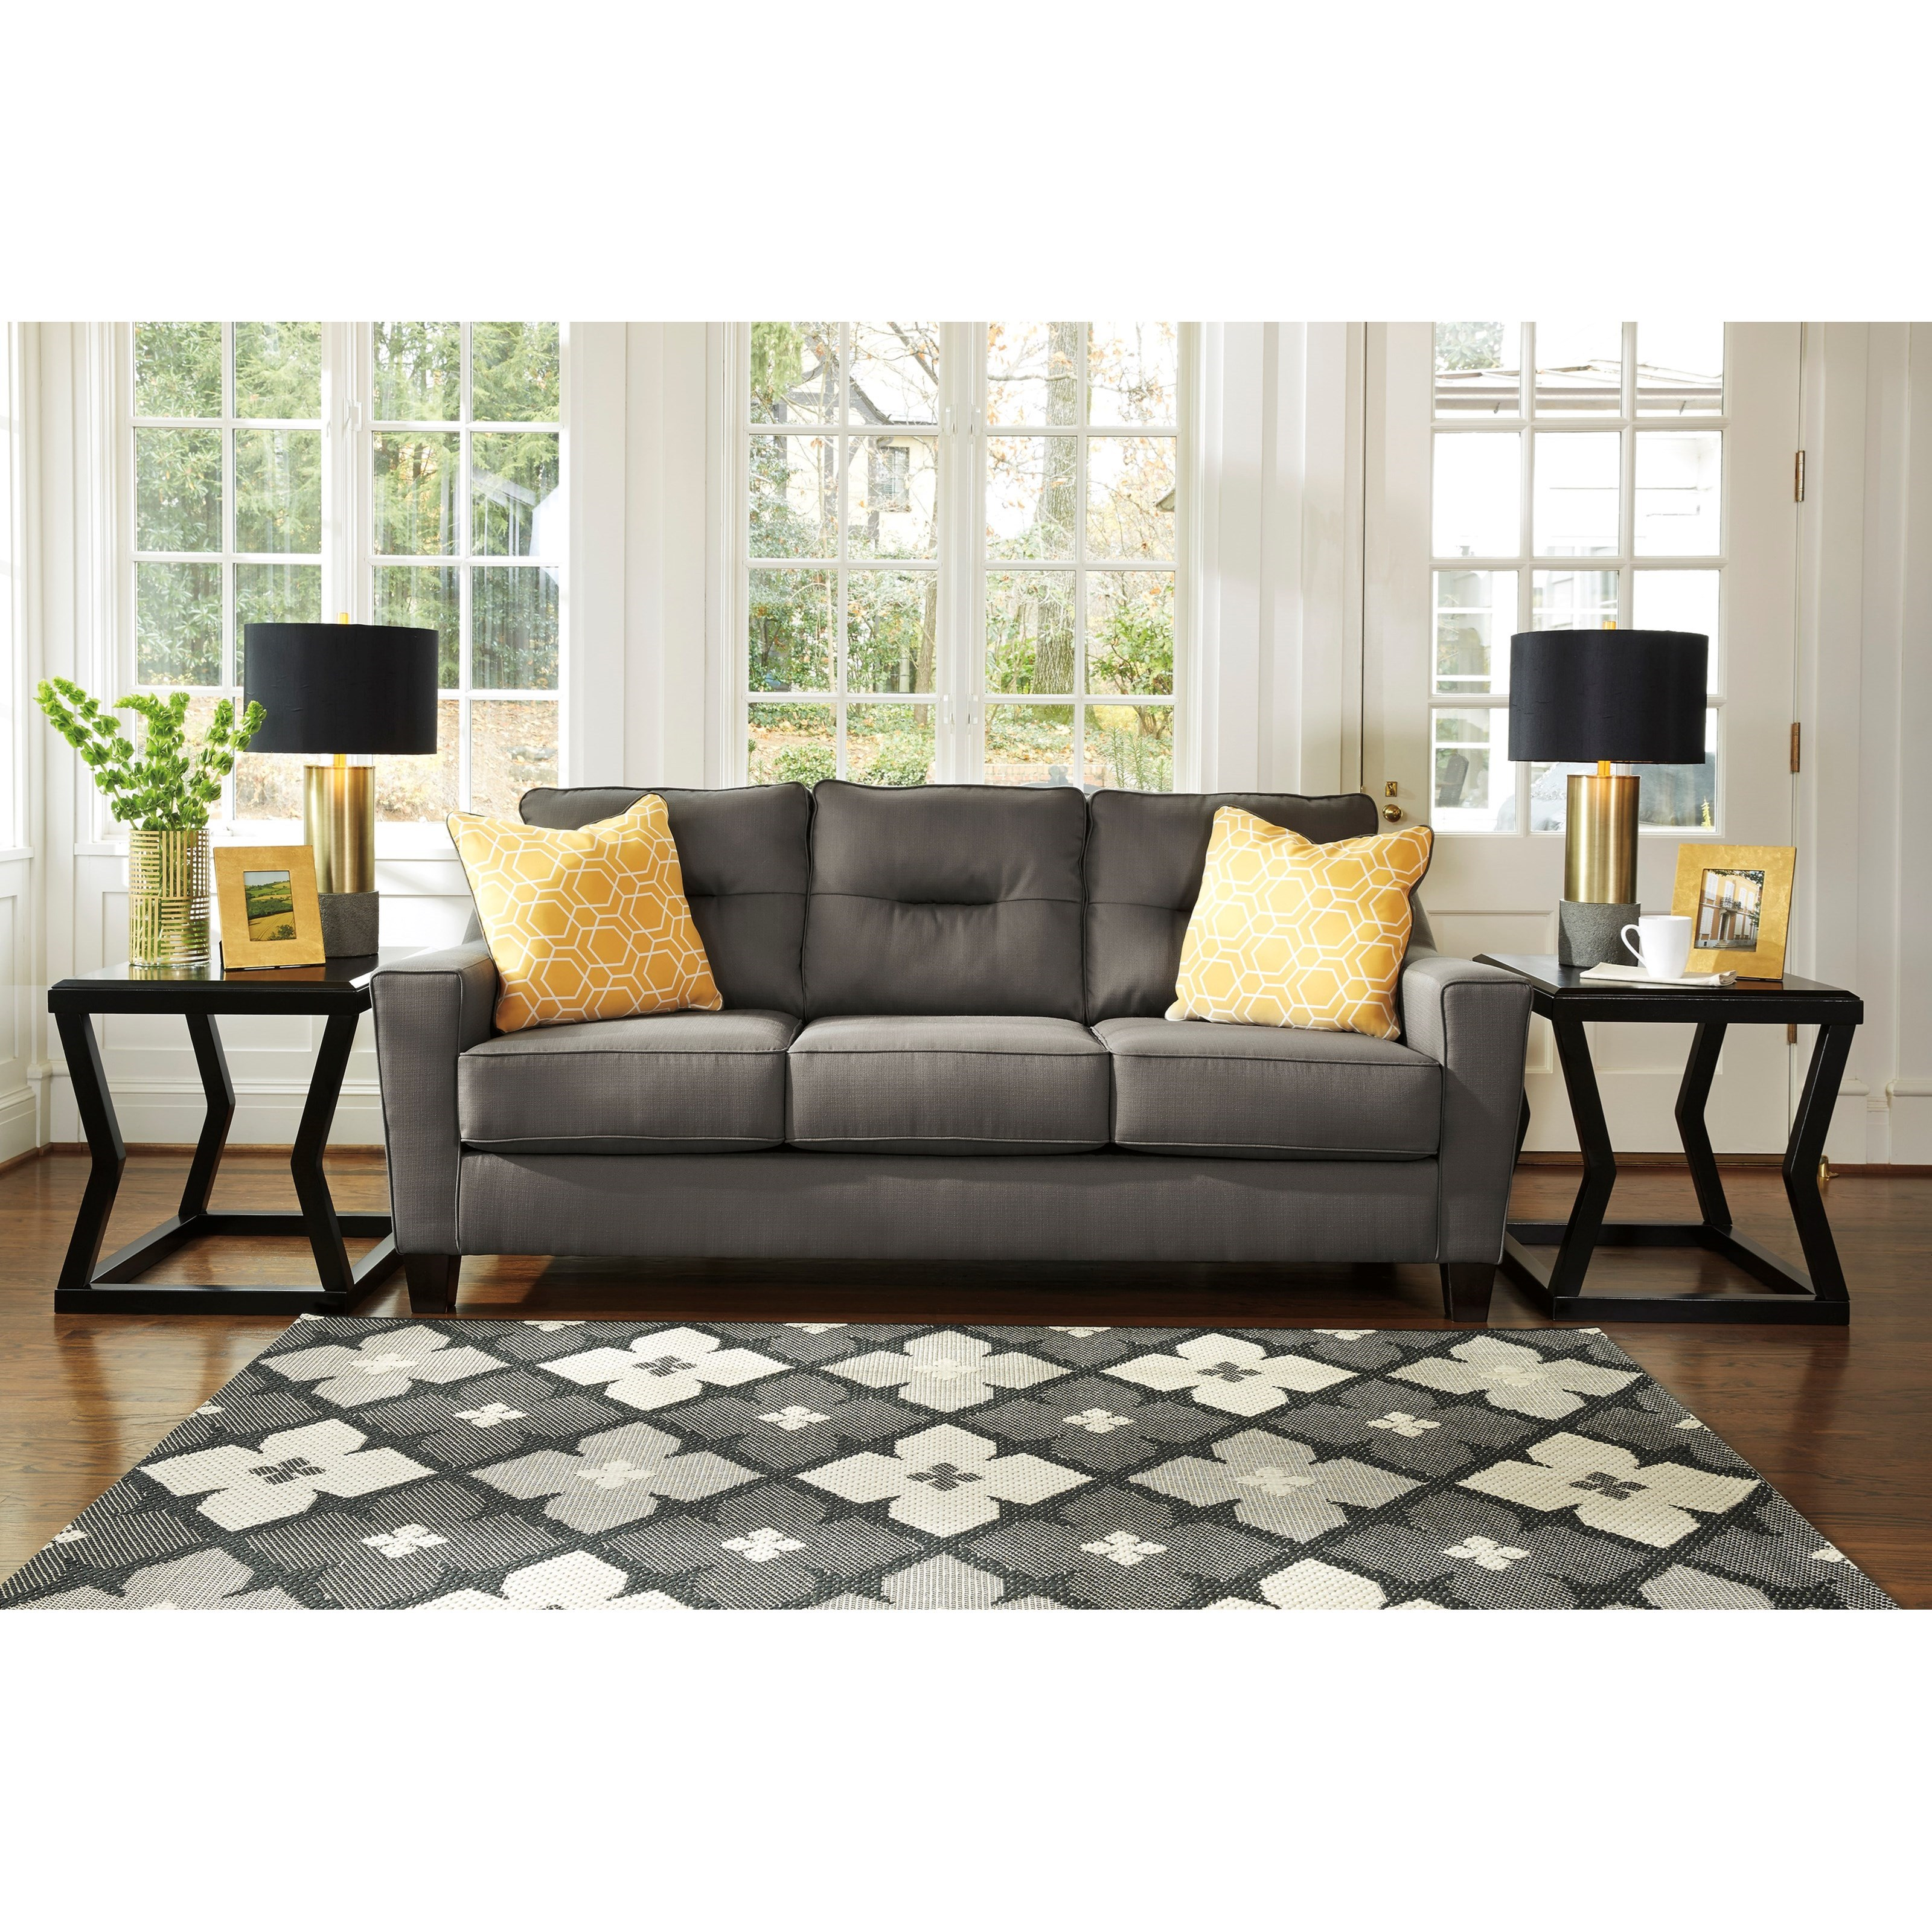 Benchcraft Forsan Nuvella Contemporary Sofa In Performance